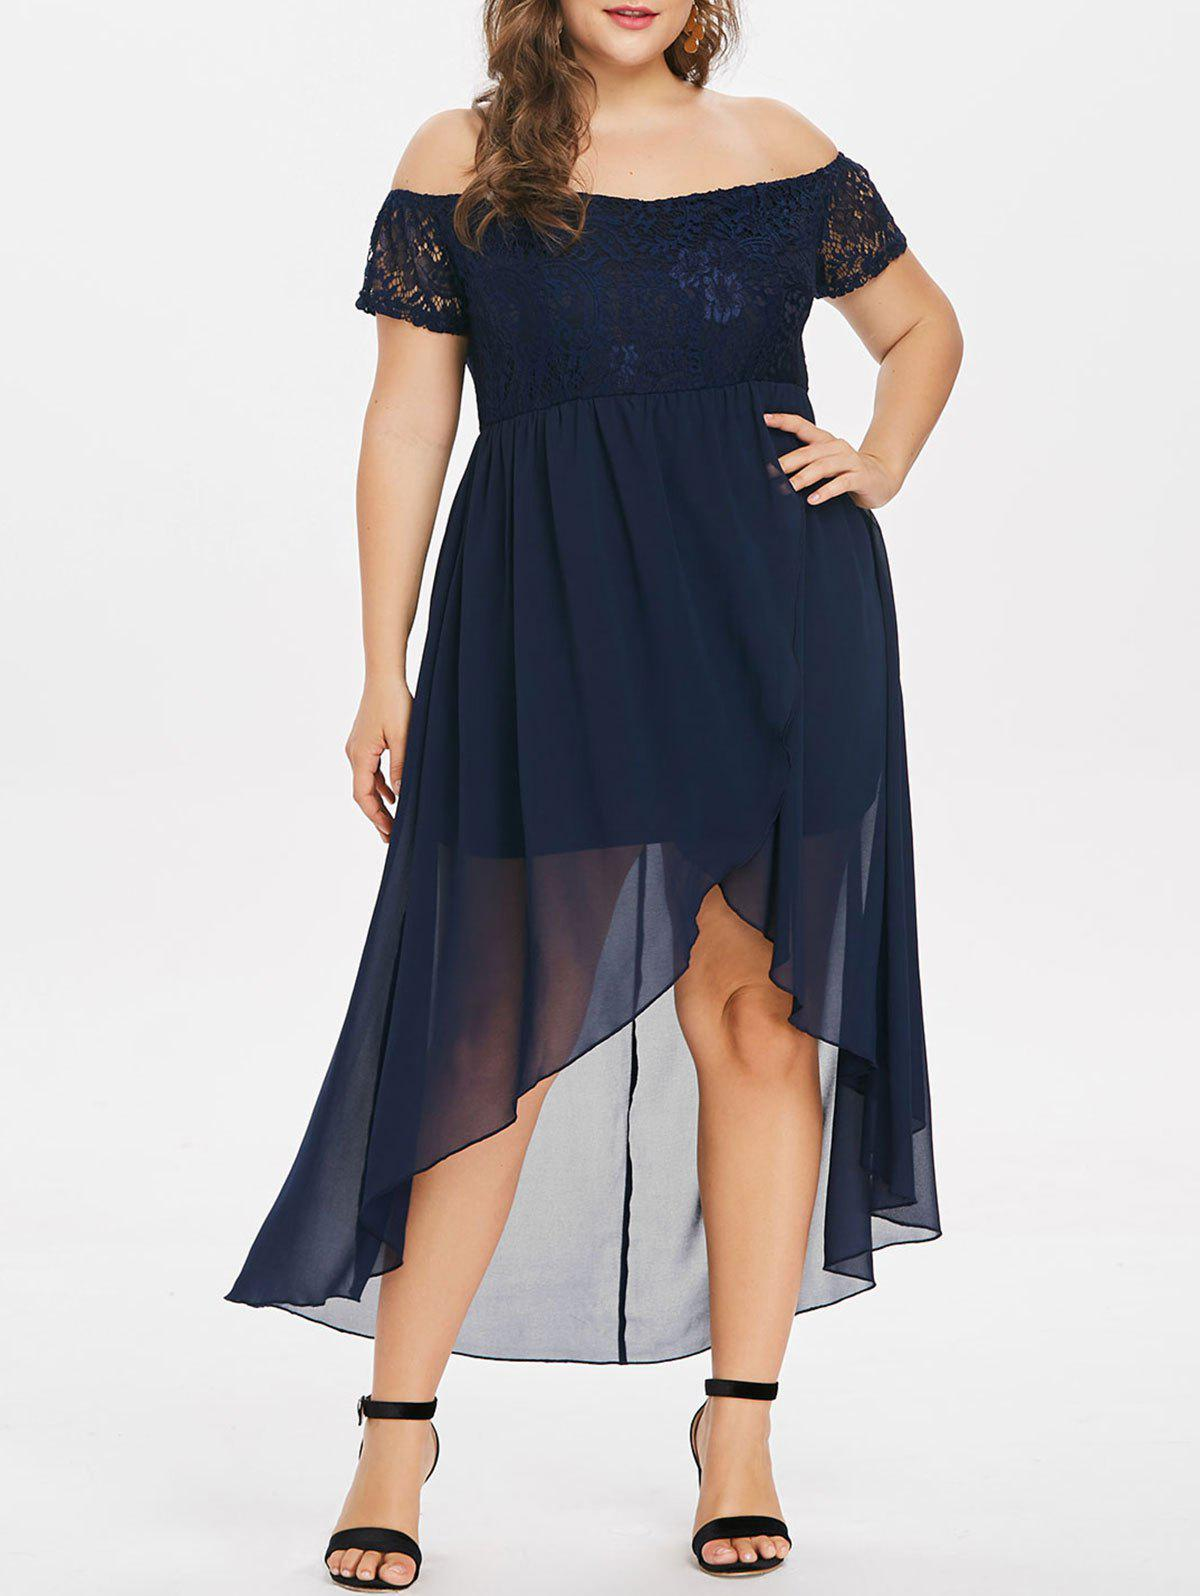 Fancy Front Slit Lace Insert Plus Size High Low Dress